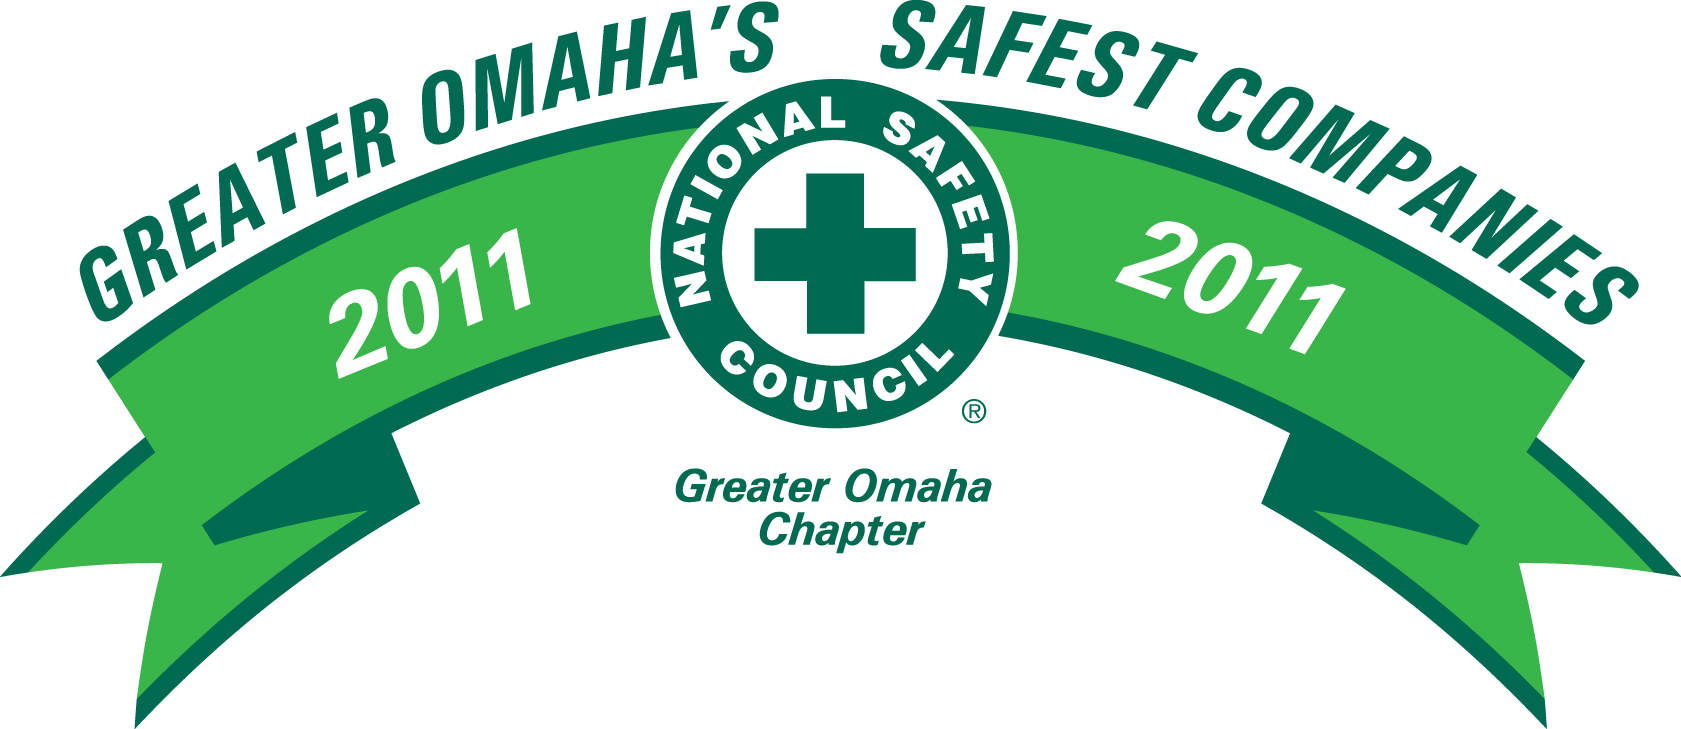 Cassling Recognized as Greater Omaha Safest Company